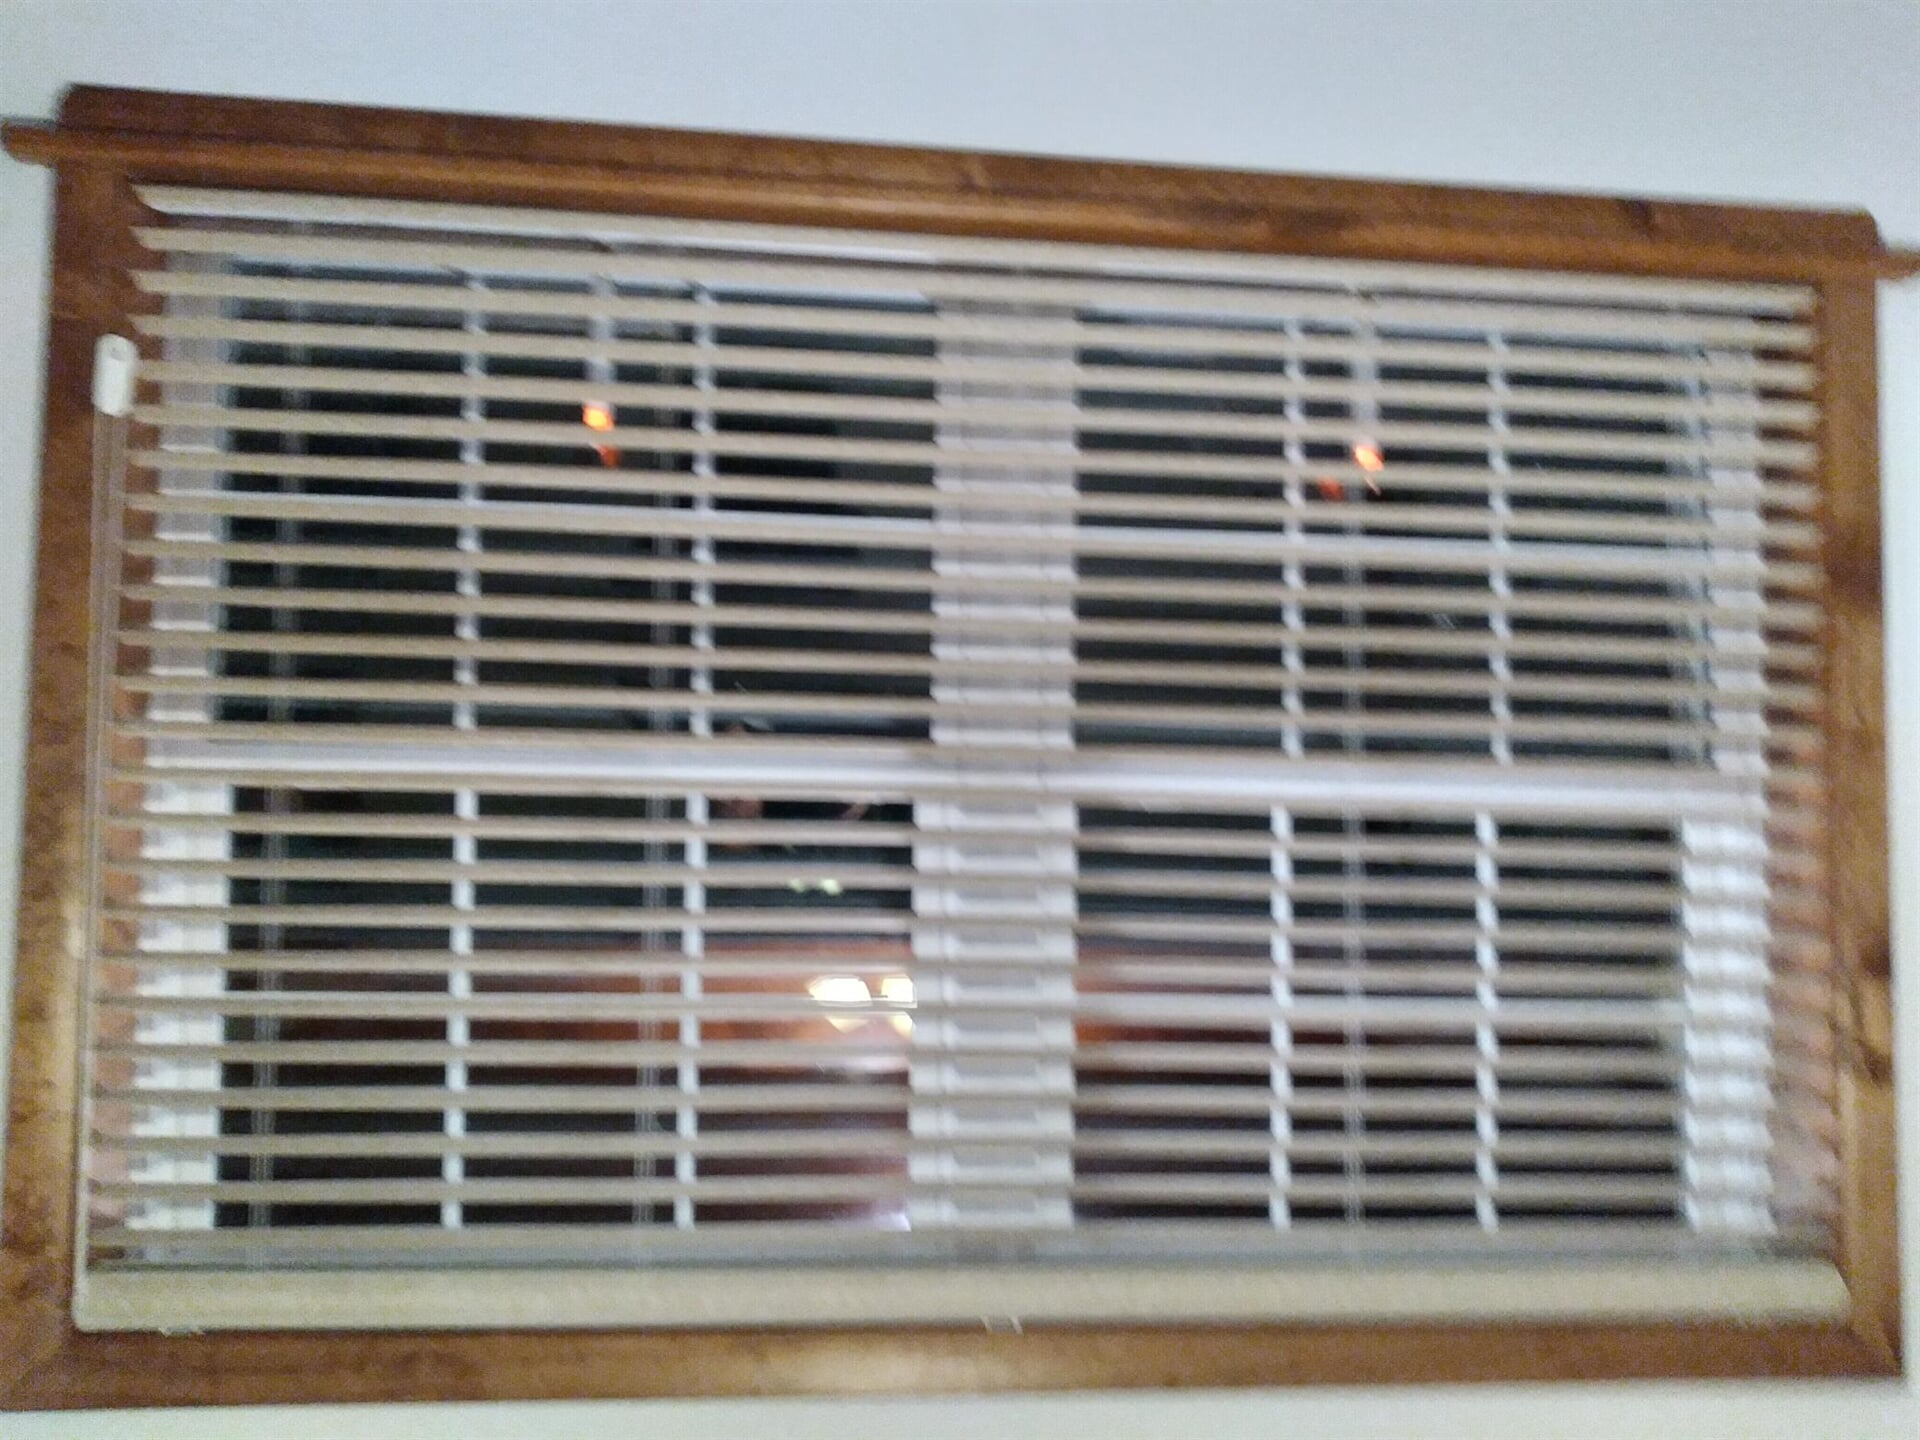 Window blinds in Schuylkill Haven, PA from Kissingers Floor & Wall